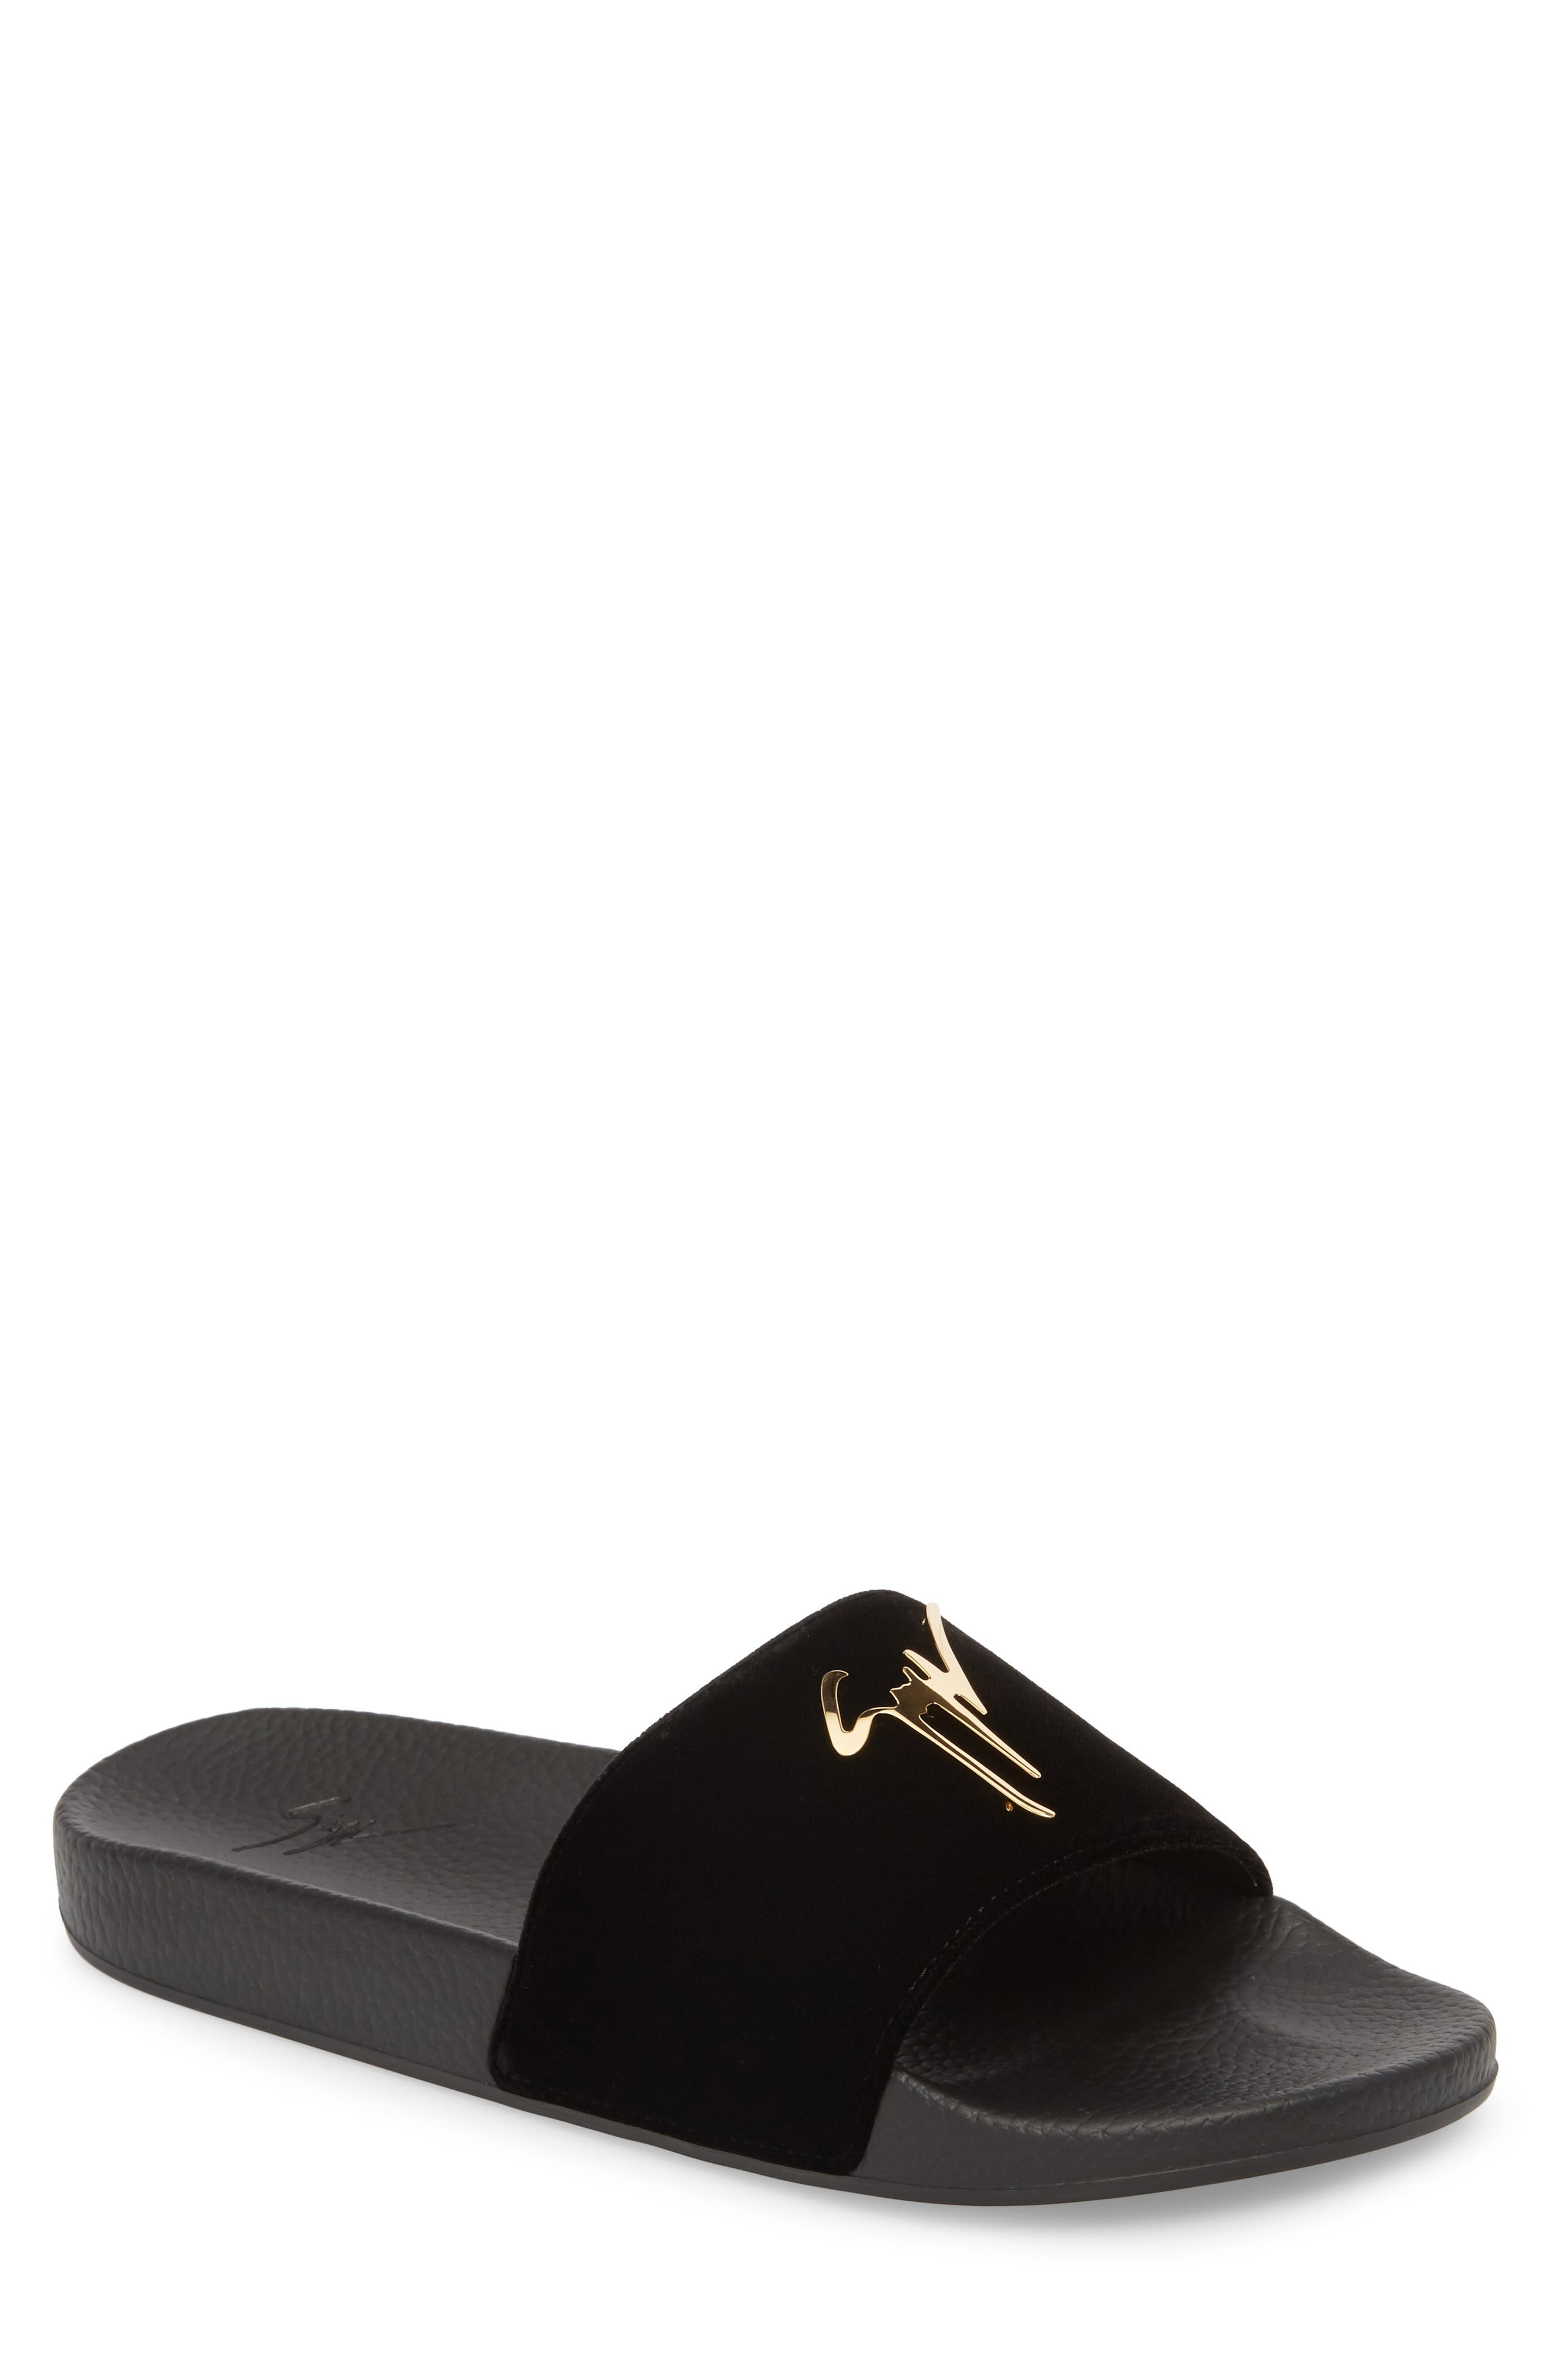 Slide Sandal,                             Main thumbnail 1, color,                             NERO